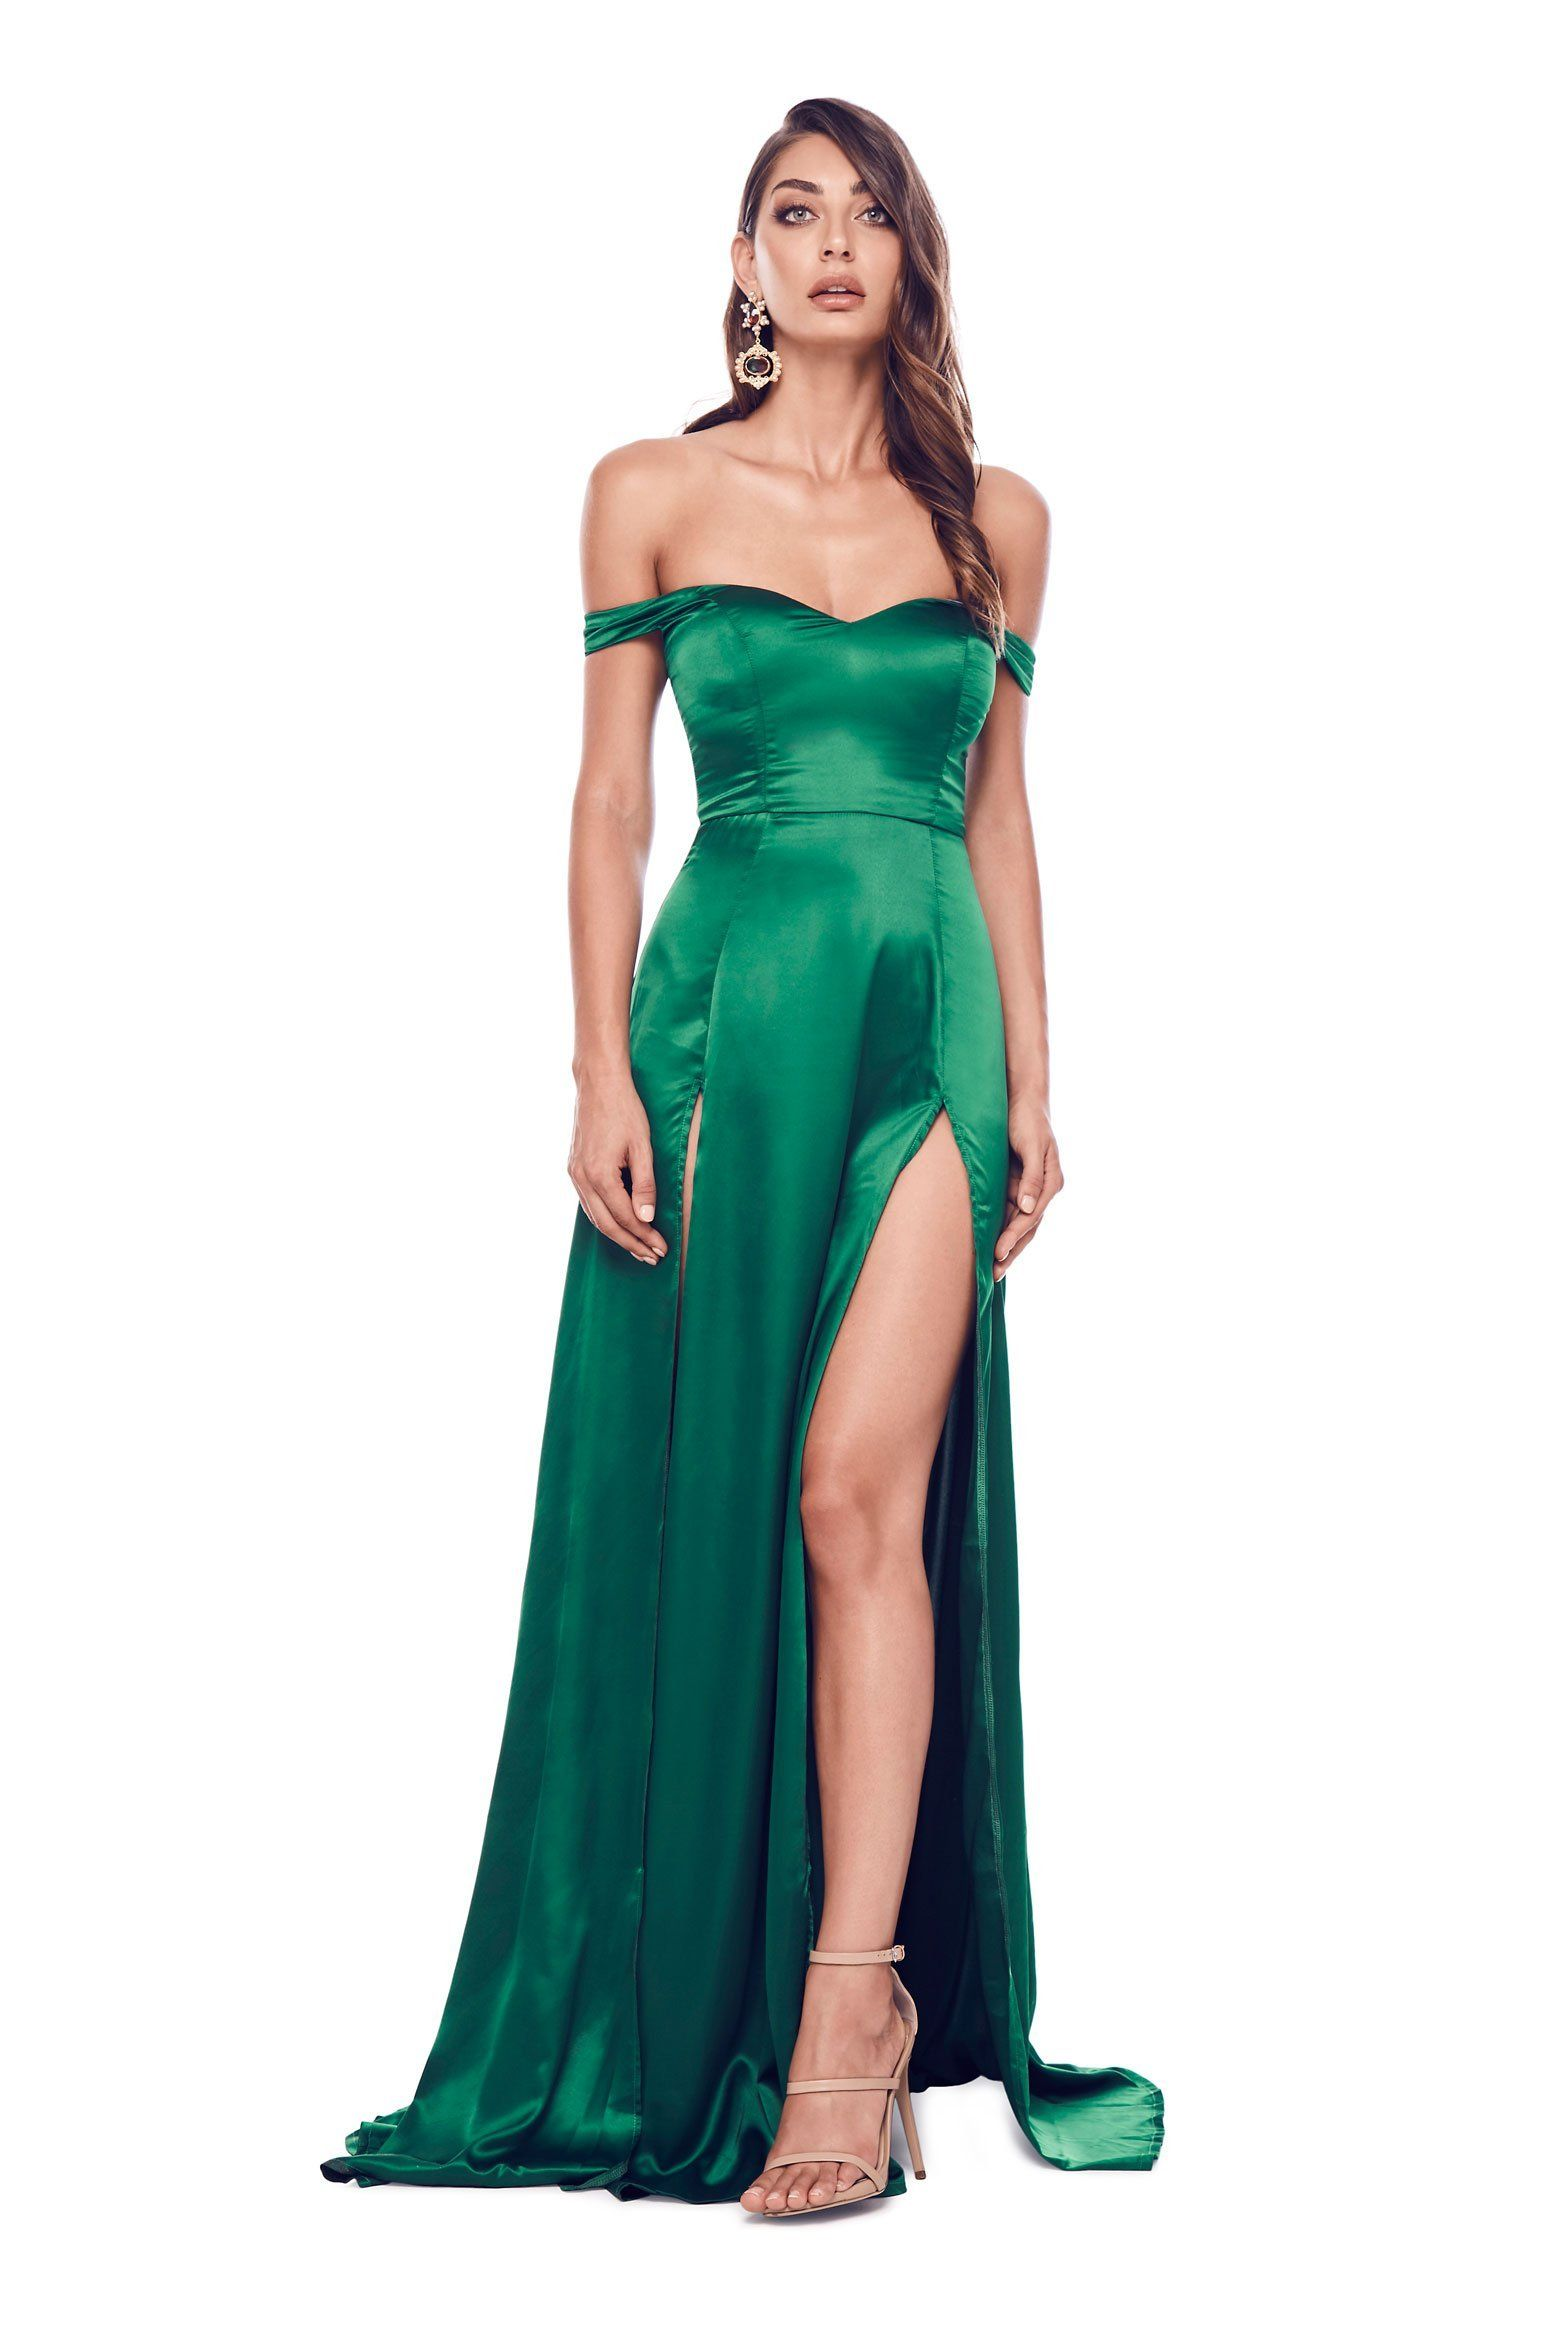 c83503103032 Create your own spotlight in the Emerald Florentina satin gown. Featuring a  sweetheart neckline, off the shoulder drapes, low back, two thigh-high  slits and ...